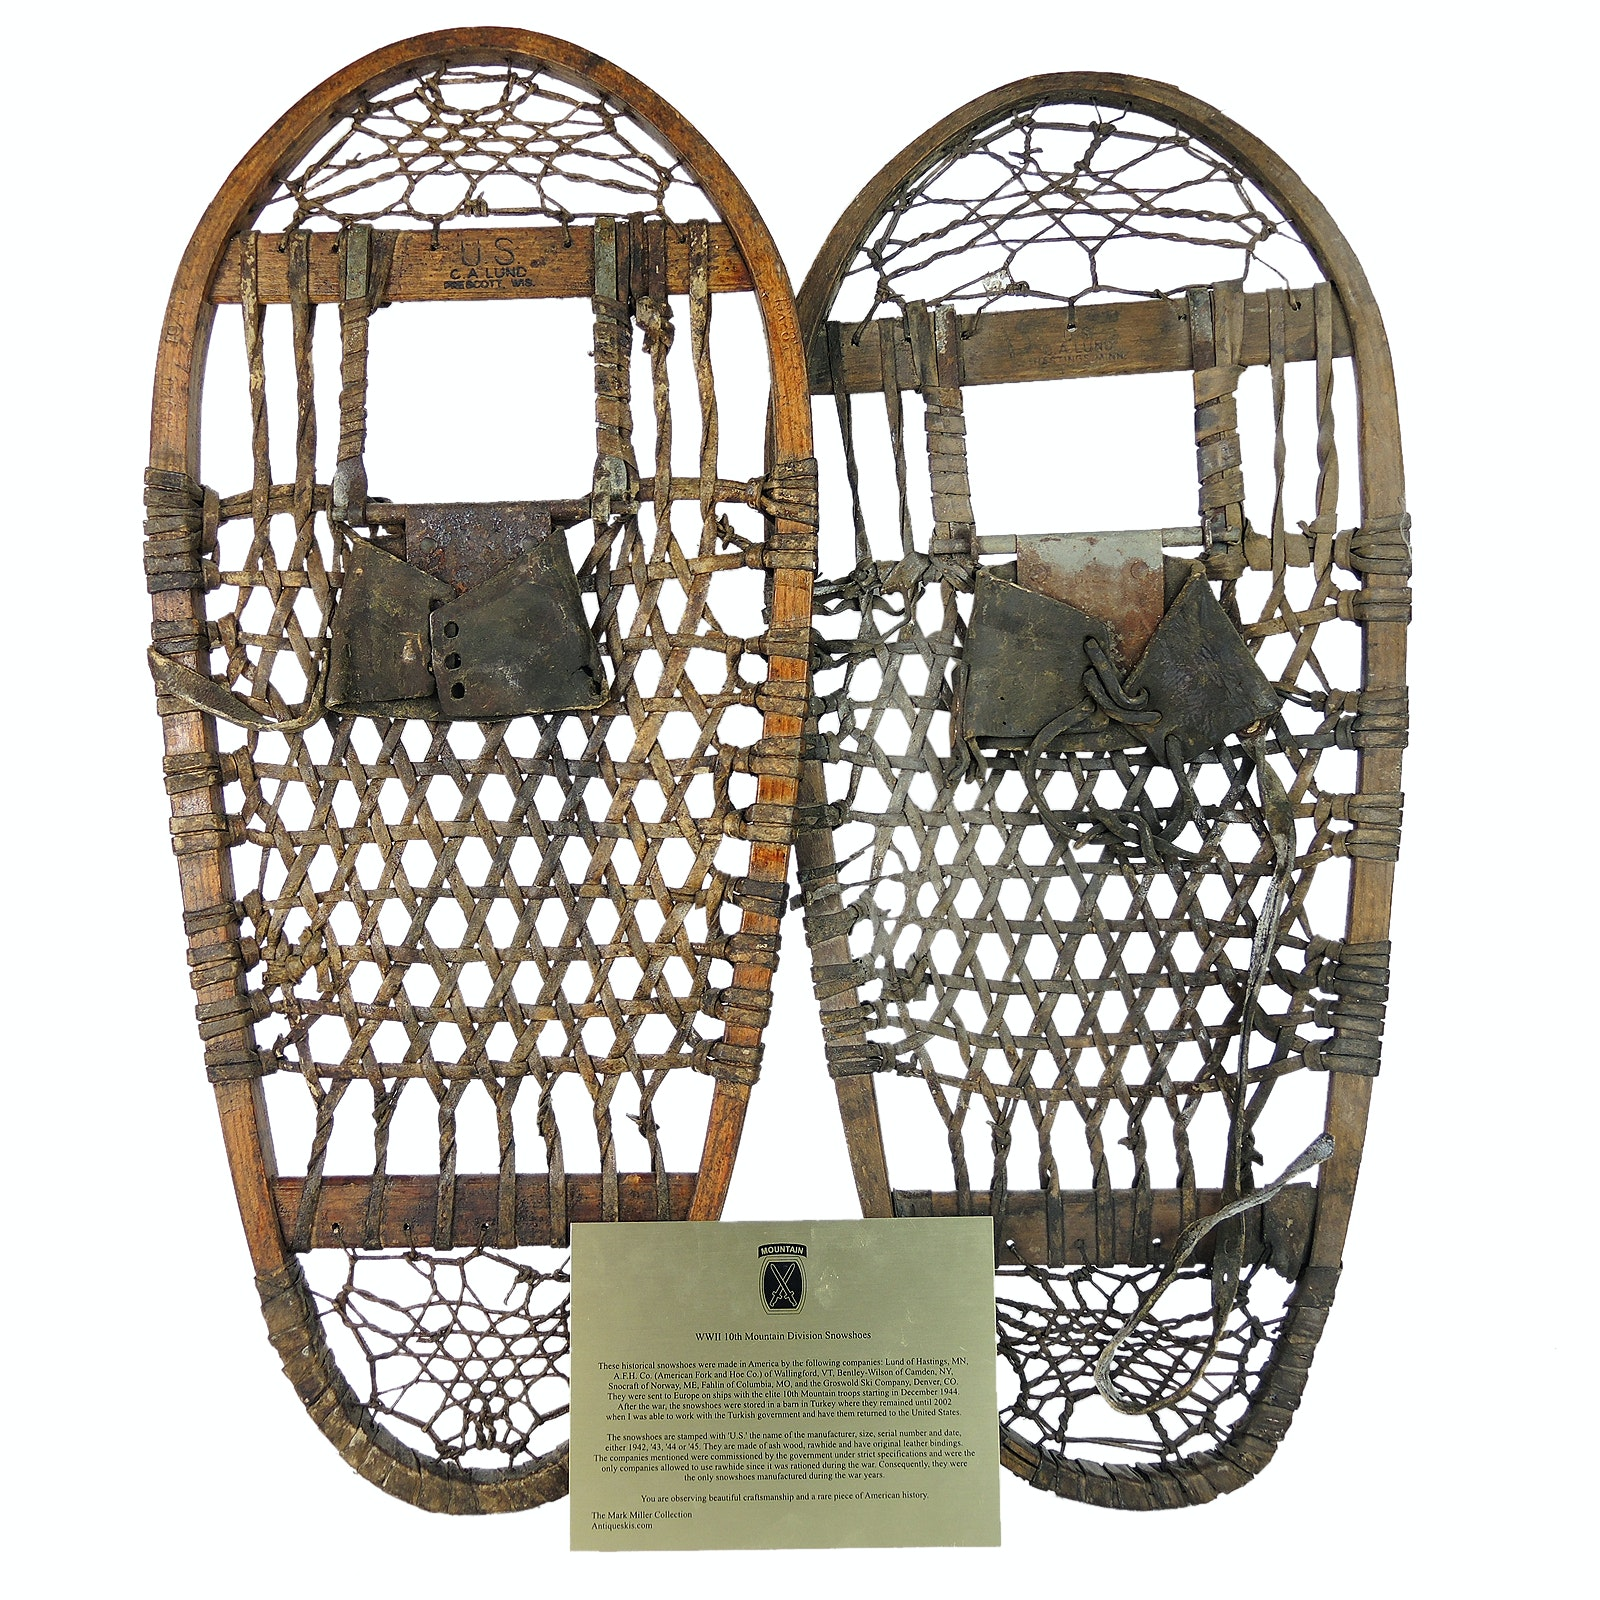 WWII 10th Mountain Division C.A. Lund Snowshoes with Placard